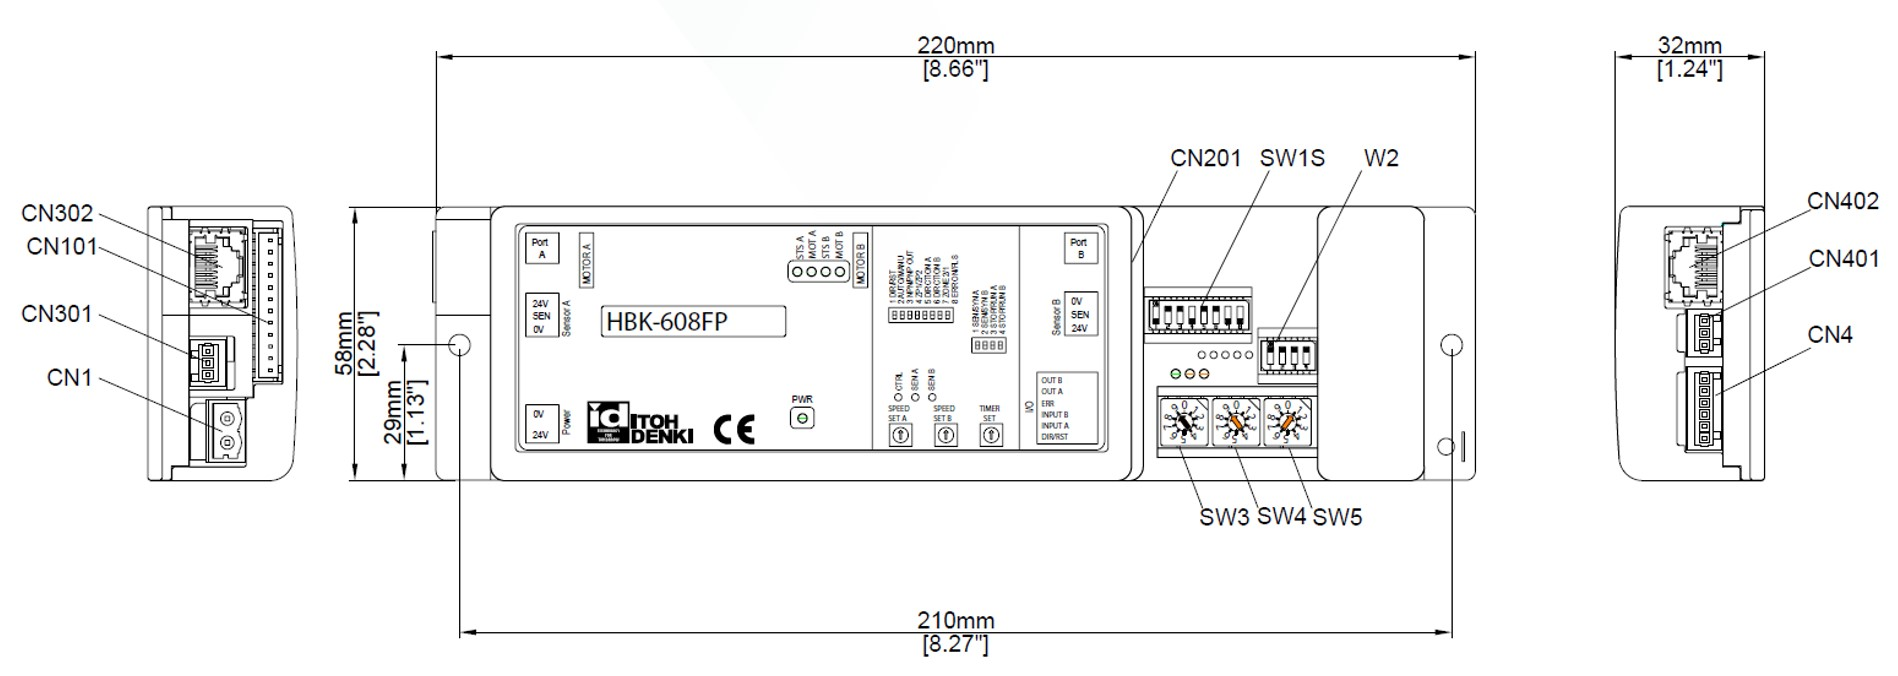 Itoh Denki Hbk 608fp Cable Wiring Zones 608 Diagram